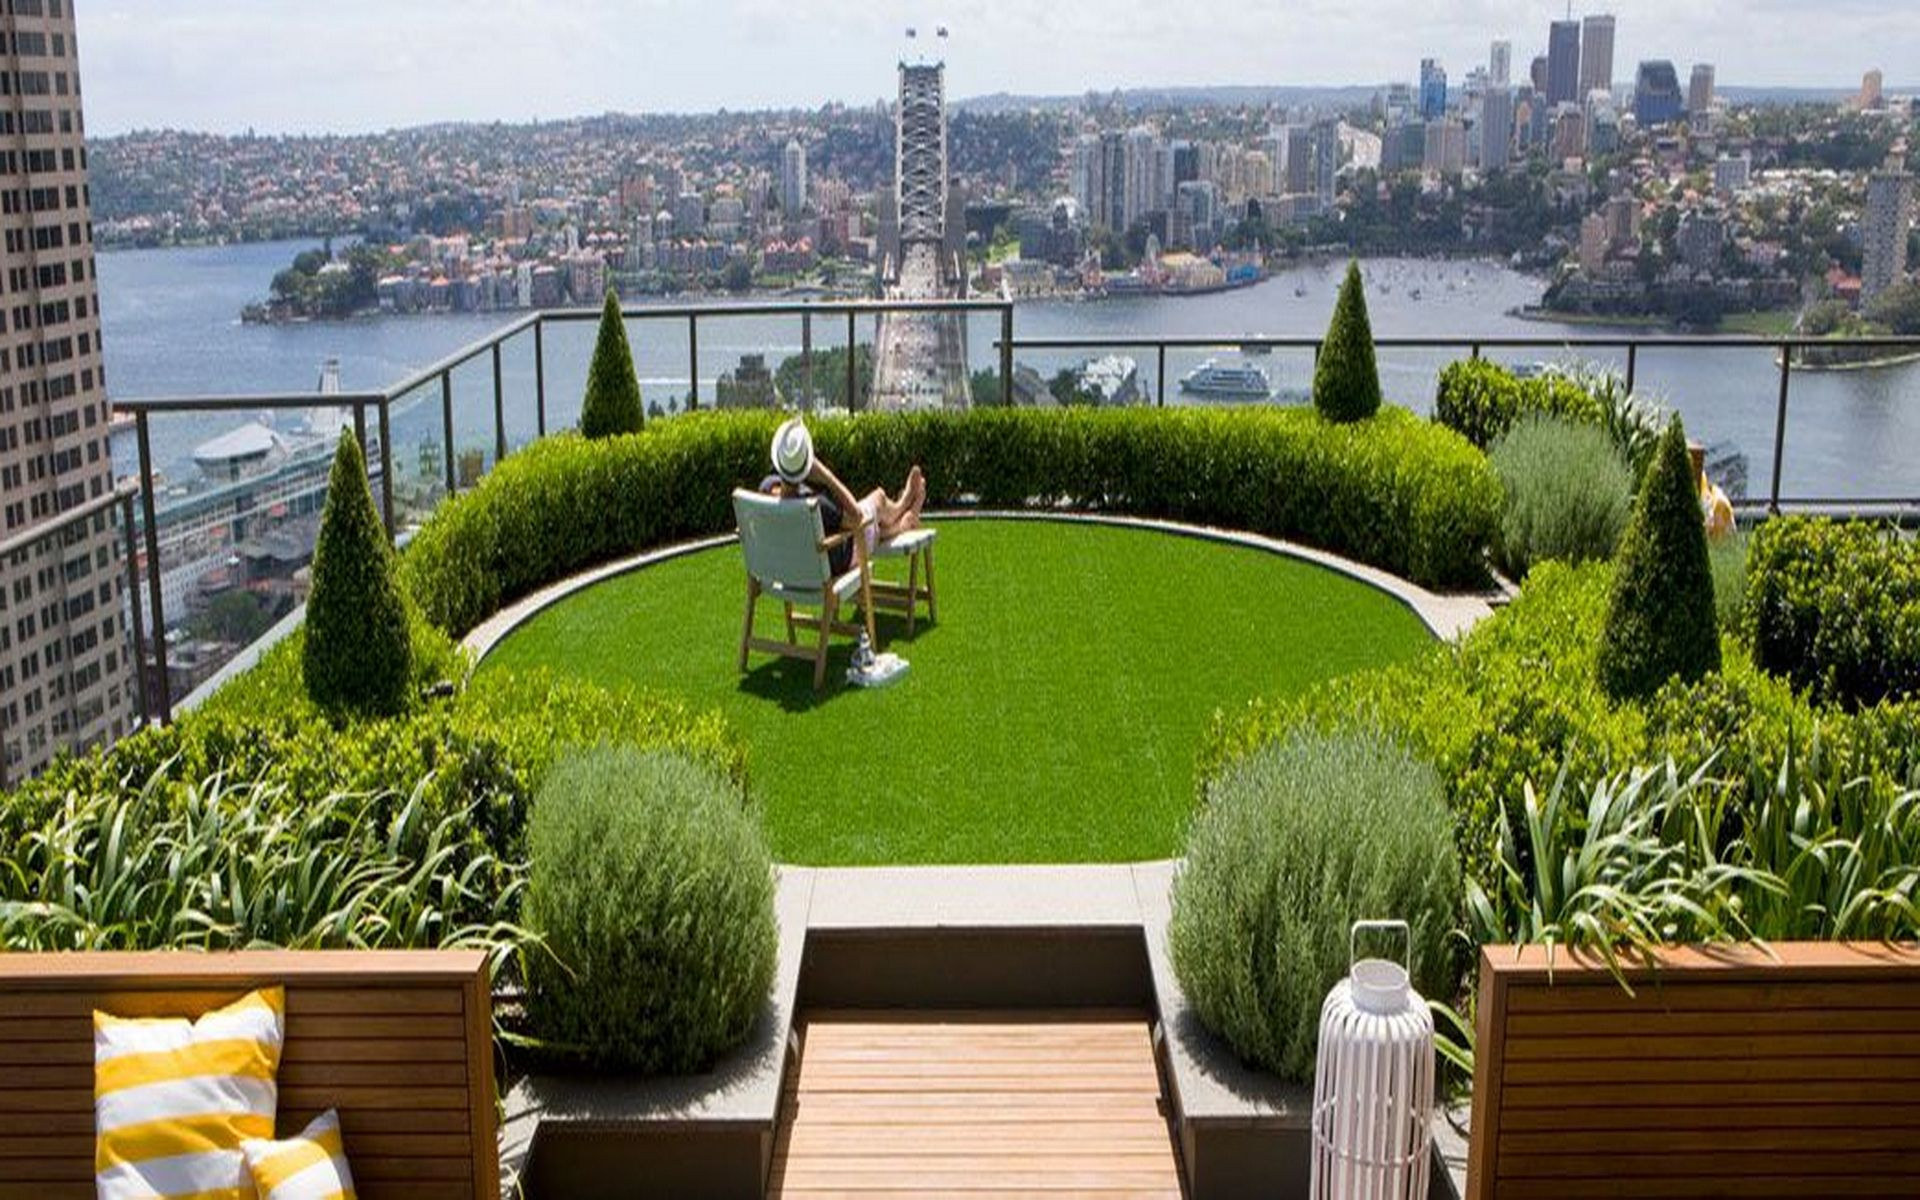 Slope Garden Ideas City Landscape Top View From Rooftop Design With Modern Green Round Wood Bench